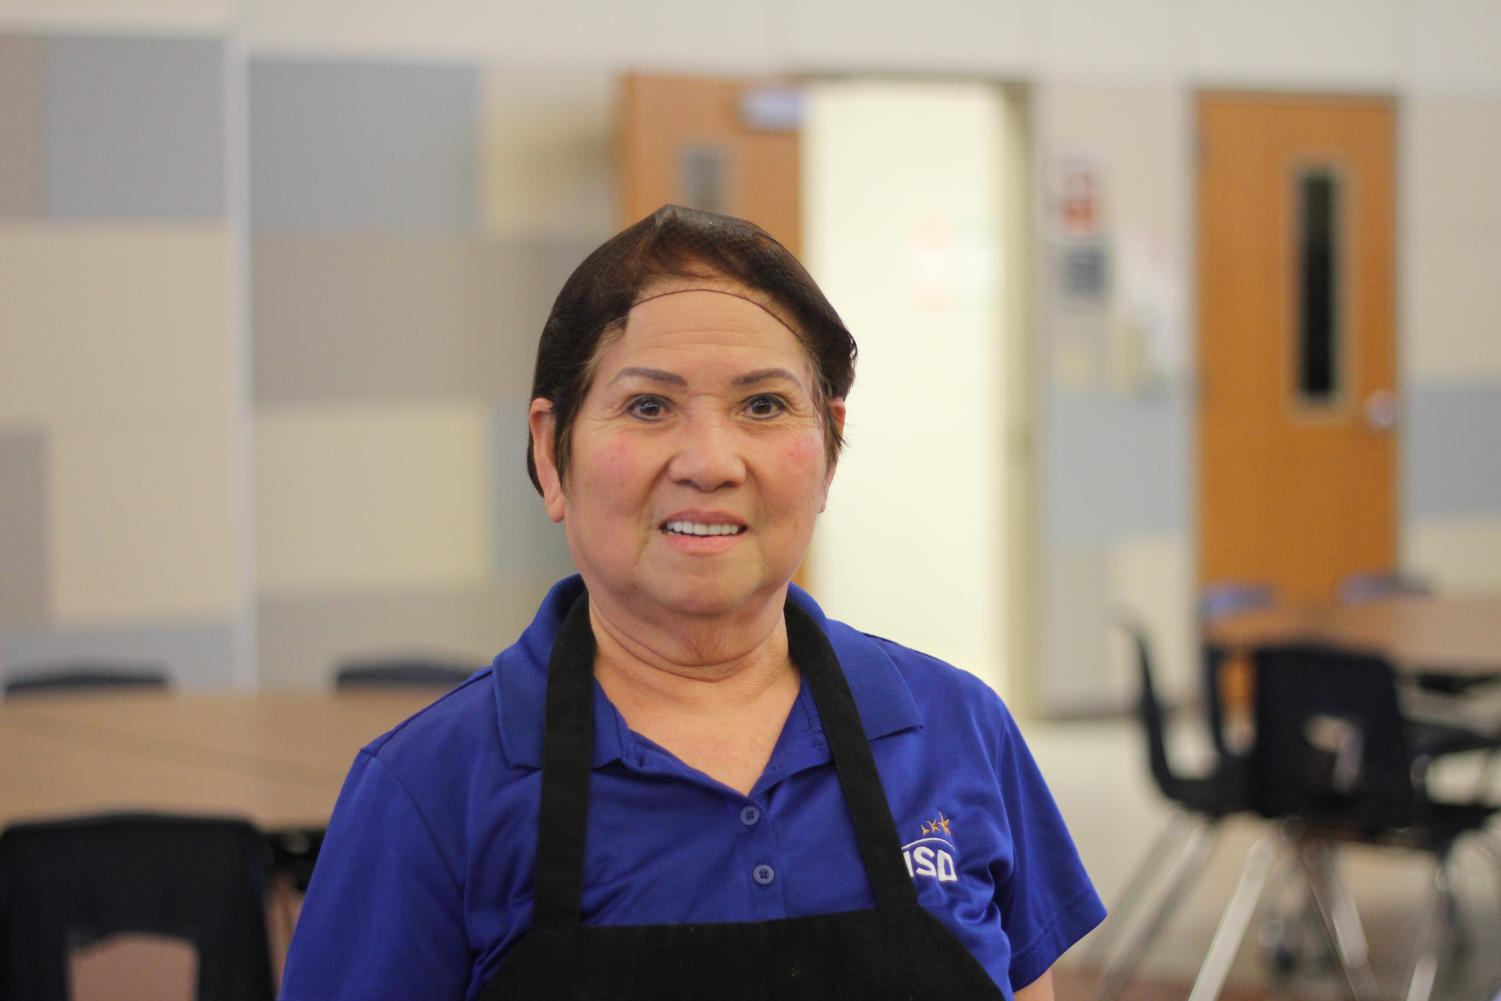 Cafeteria employee Sarin Lam poses for a photo. She shared her story of immigrating to America in 1975.